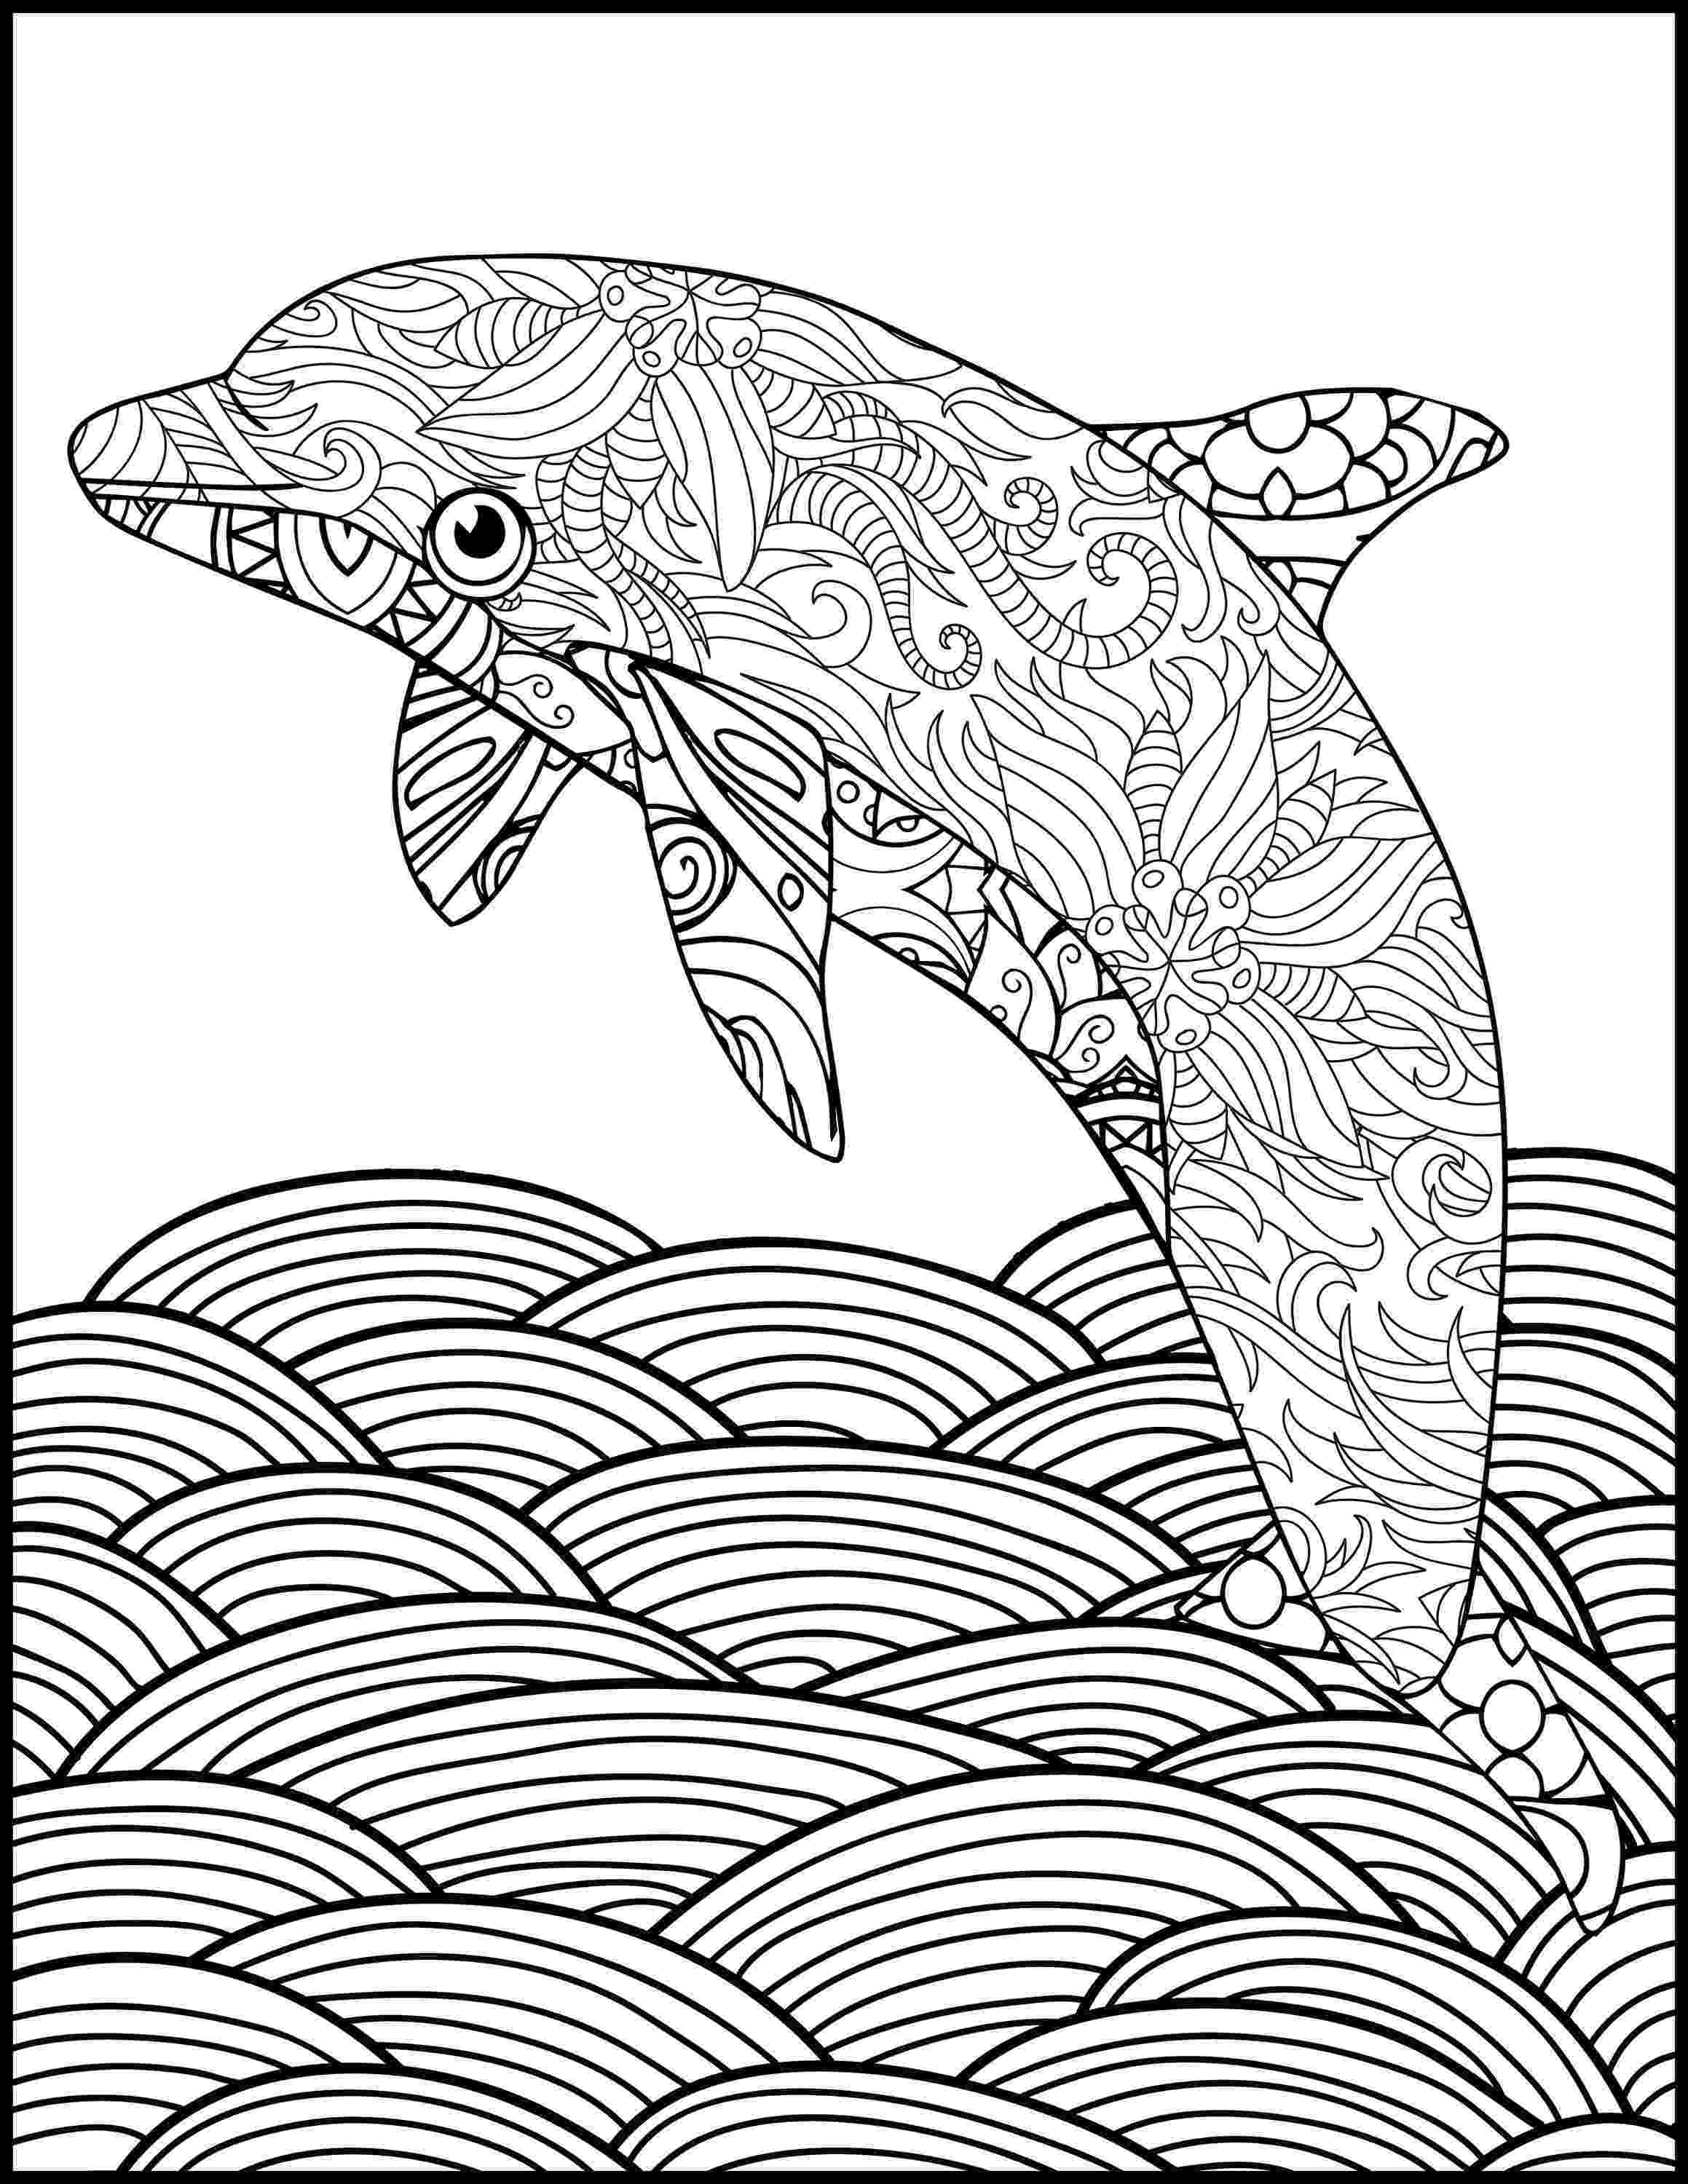 free colouring pages to print for adults printable coloring page adult coloring page dolphin etsy free for colouring adults to pages print